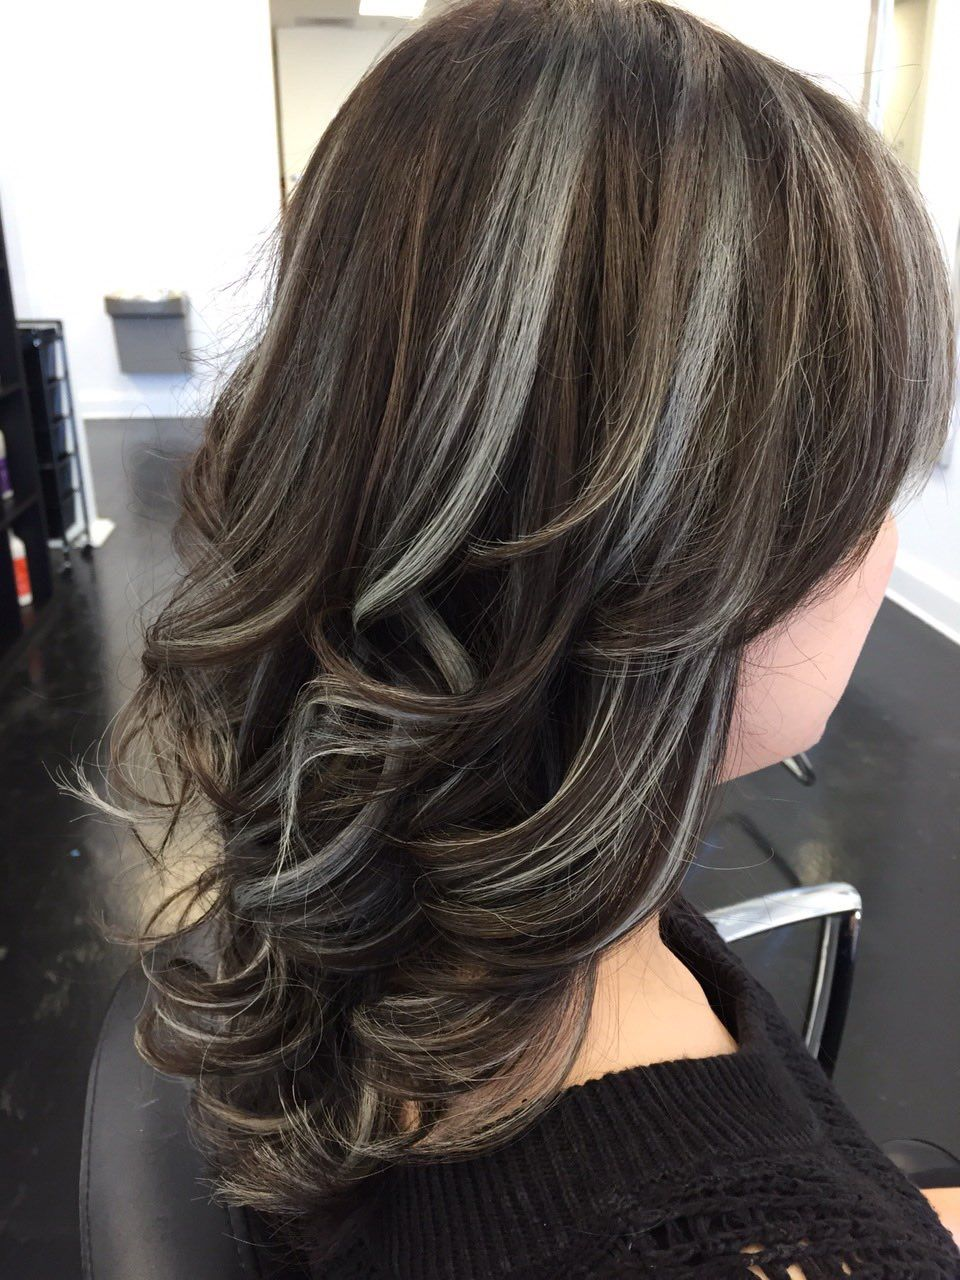 Metallic Highlights Dark Hair With Highlights Gray Hair Highlights Blending Gray Hair